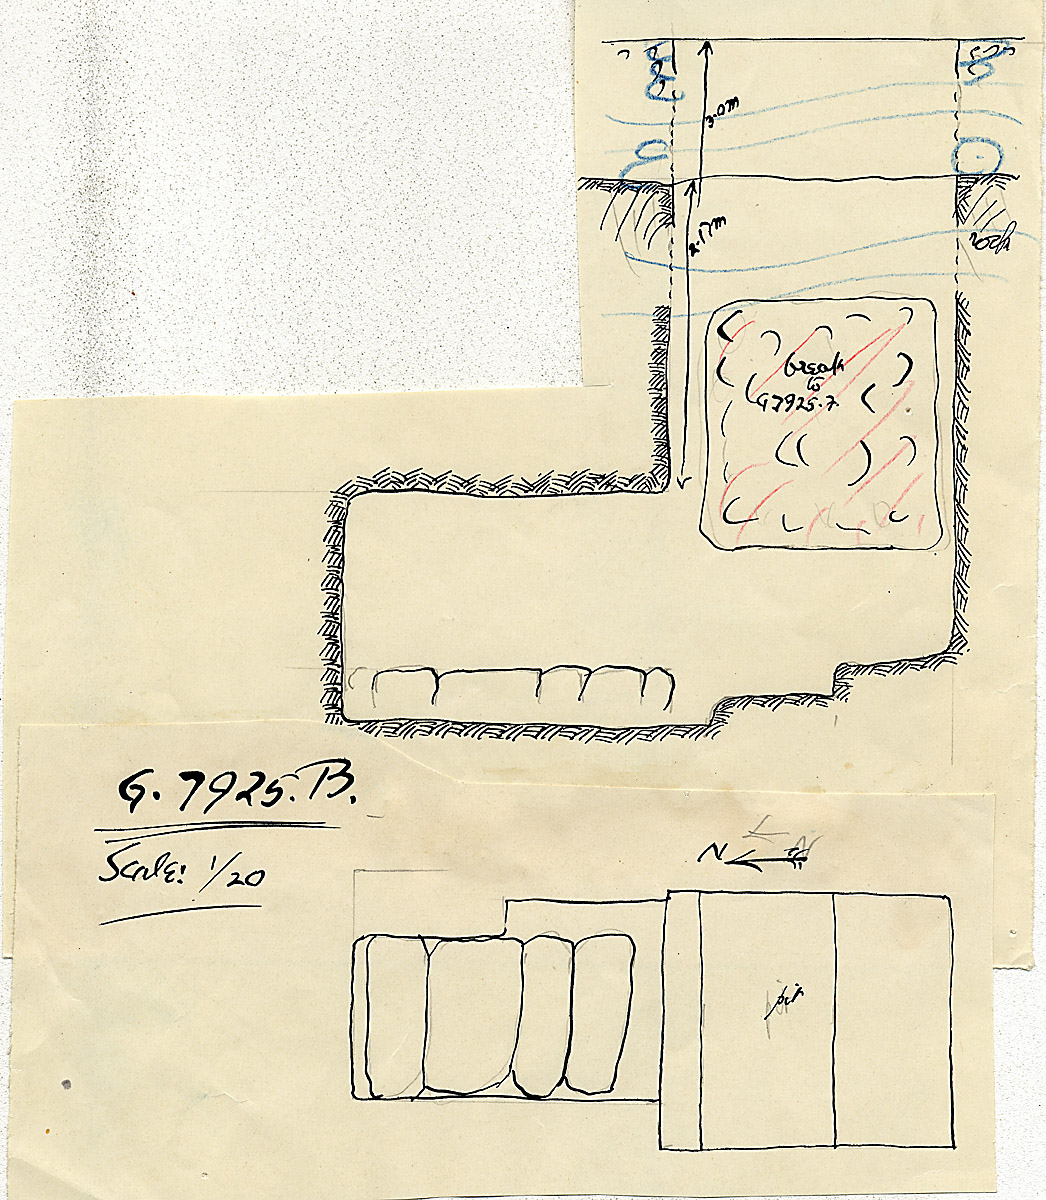 Maps and plans: G 7925, Shaft B